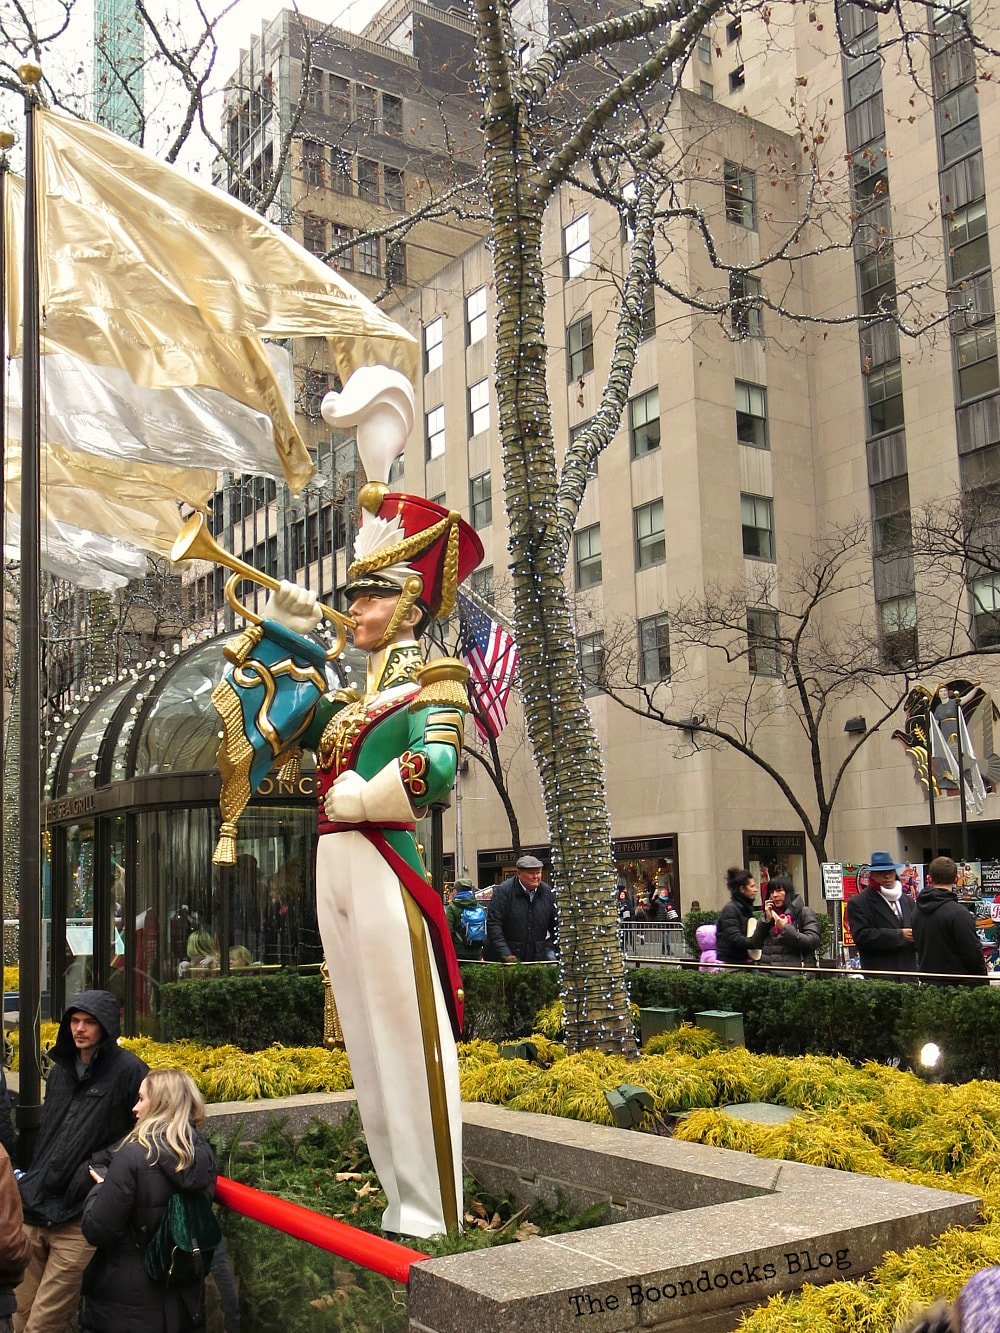 The toy soldier statue, A Visit to the Spectacular Tree at Rockefeller Center www.theboondocksblog.com